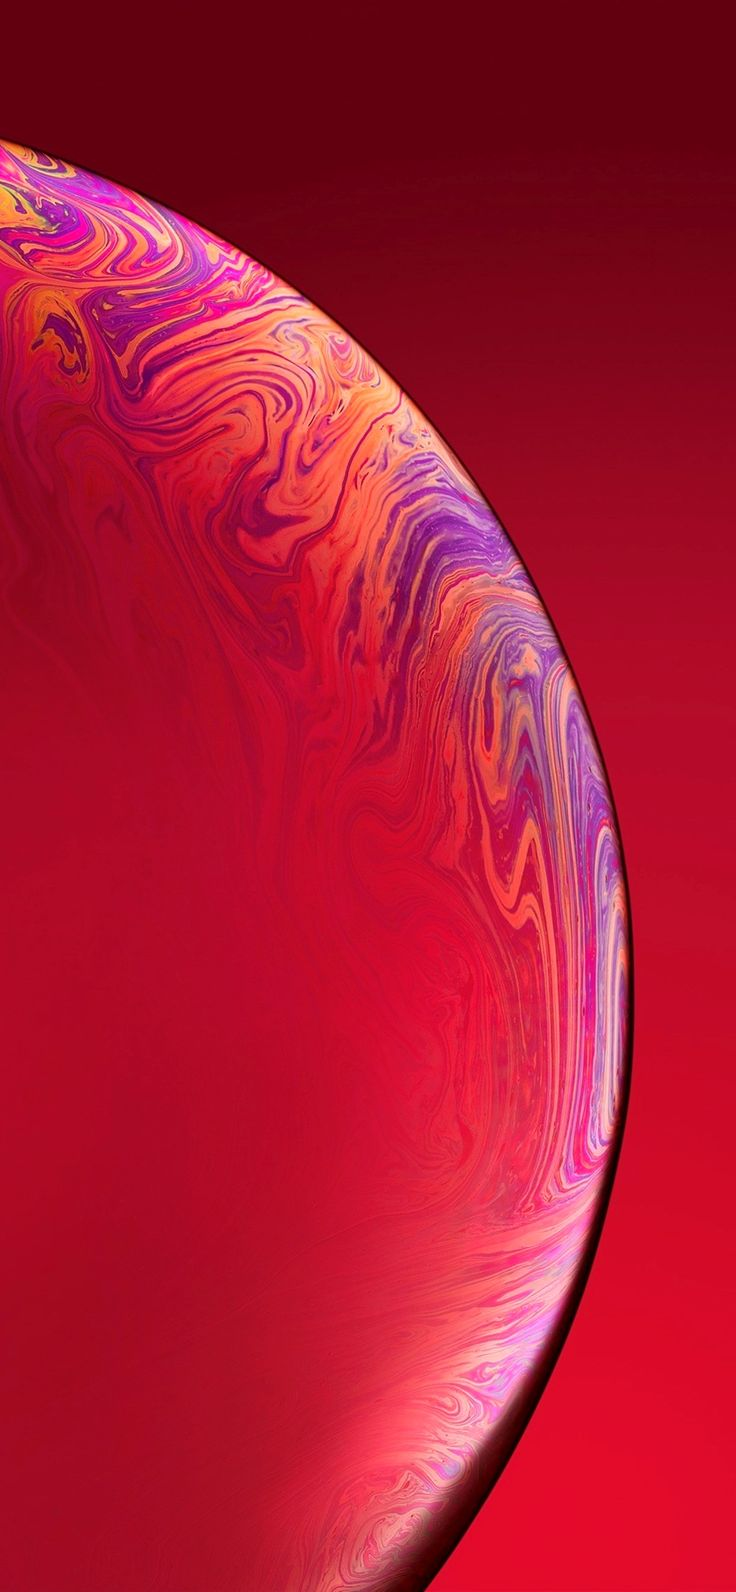 Iphone Xs Wallpaper 4K Red Trick | Iphone red wallpaper ...